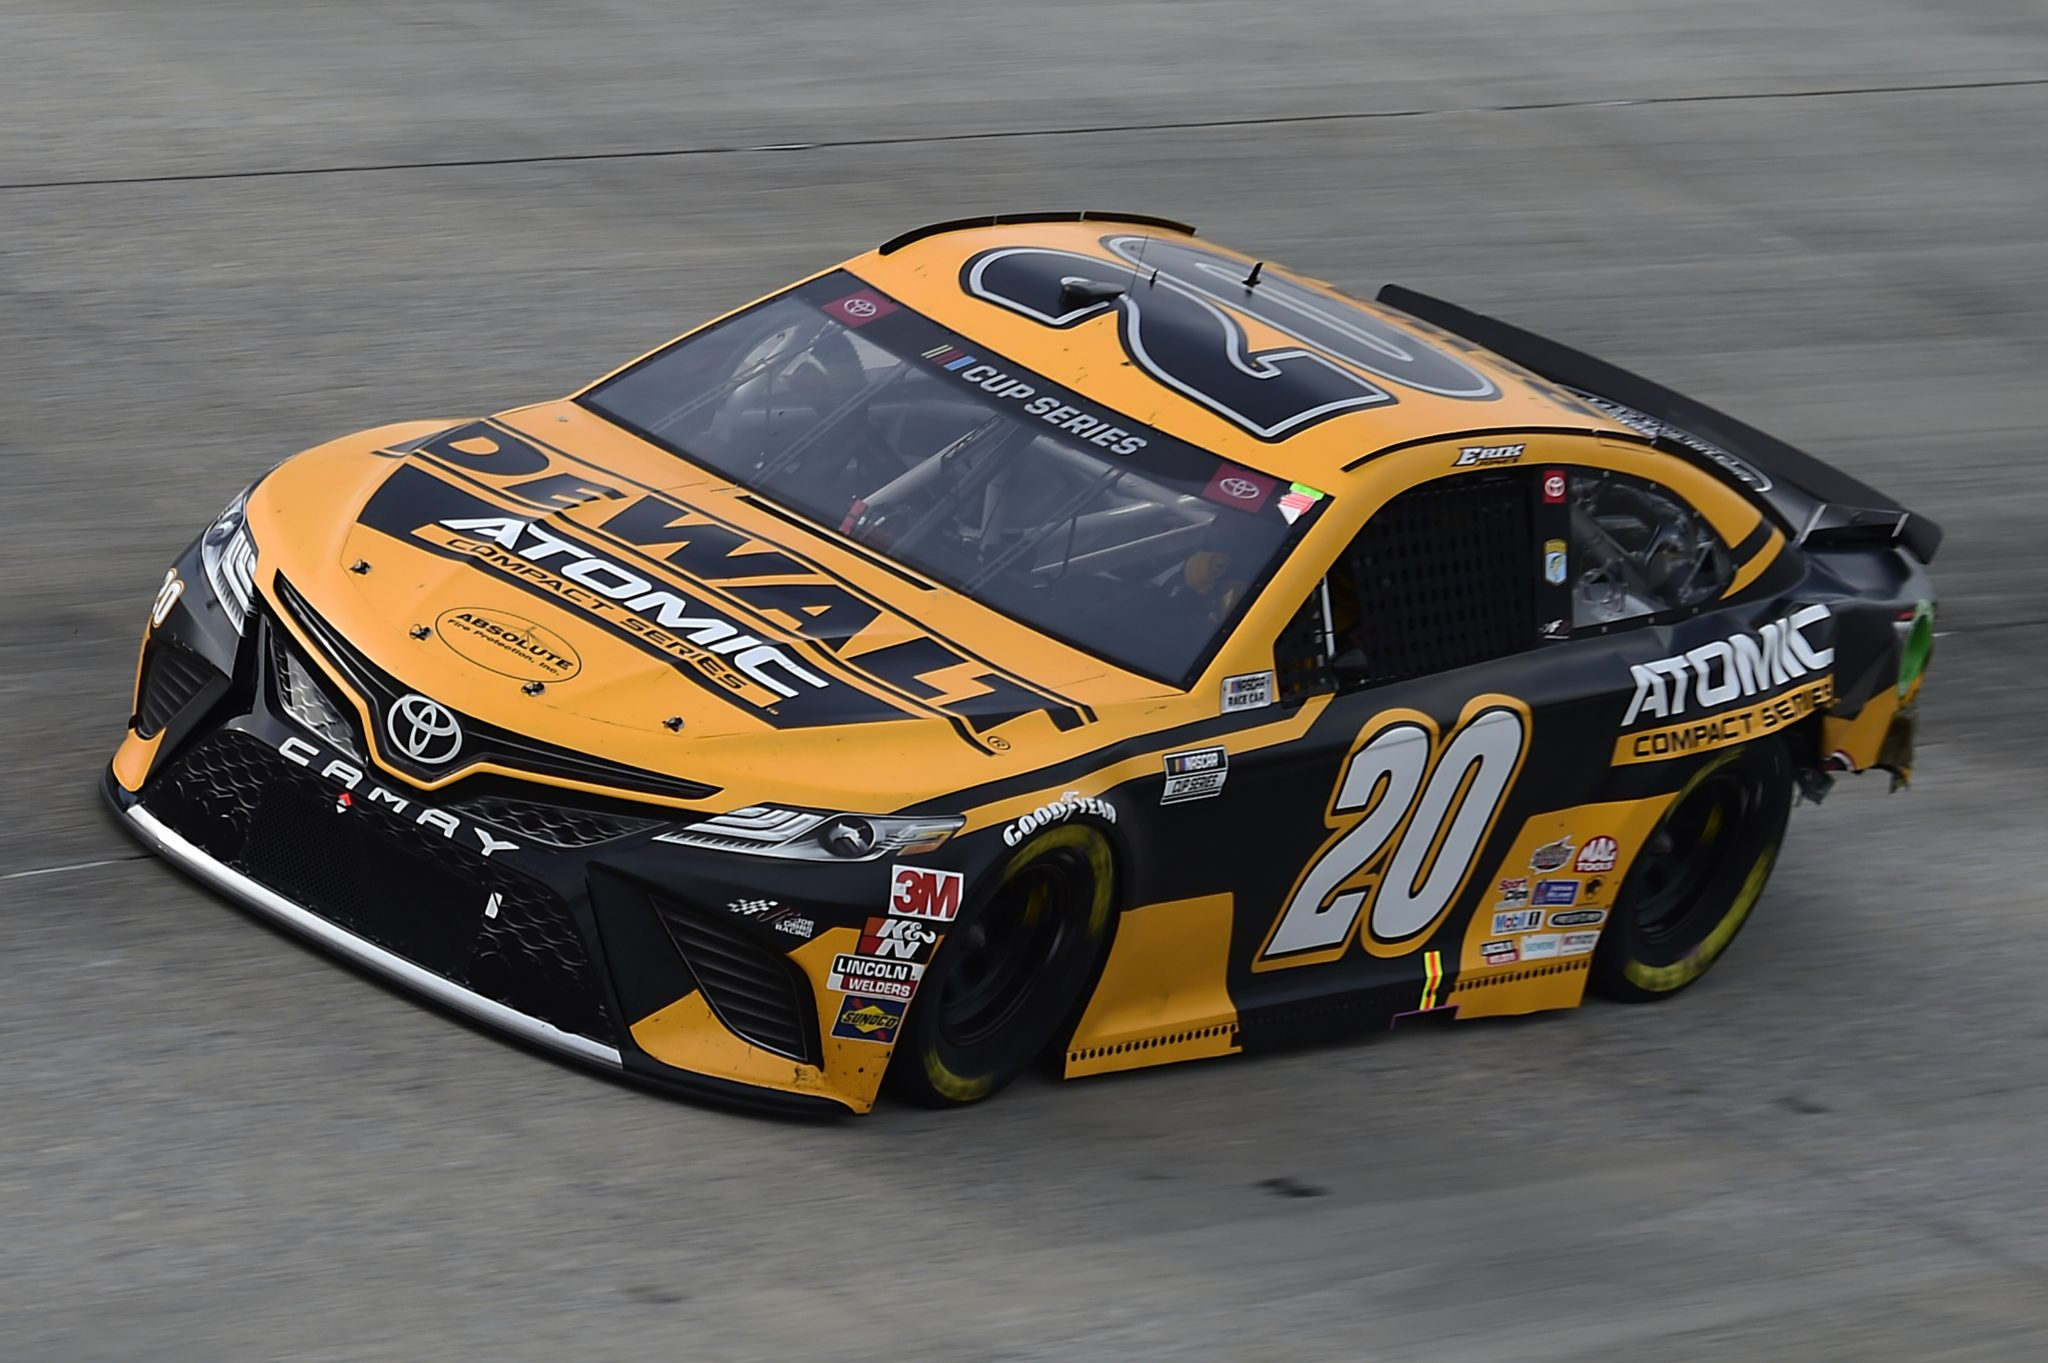 DOVER, DELAWARE - AUGUST 22: Erik Jones, driver of the #20 DEWALT Atomic Toyota, drives during the NASCAR Cup Series Drydene 311 at Dover International Speedway on August 22, 2020 in Dover, Delaware. (Photo by Jared C. Tilton/Getty Images) | Getty Images